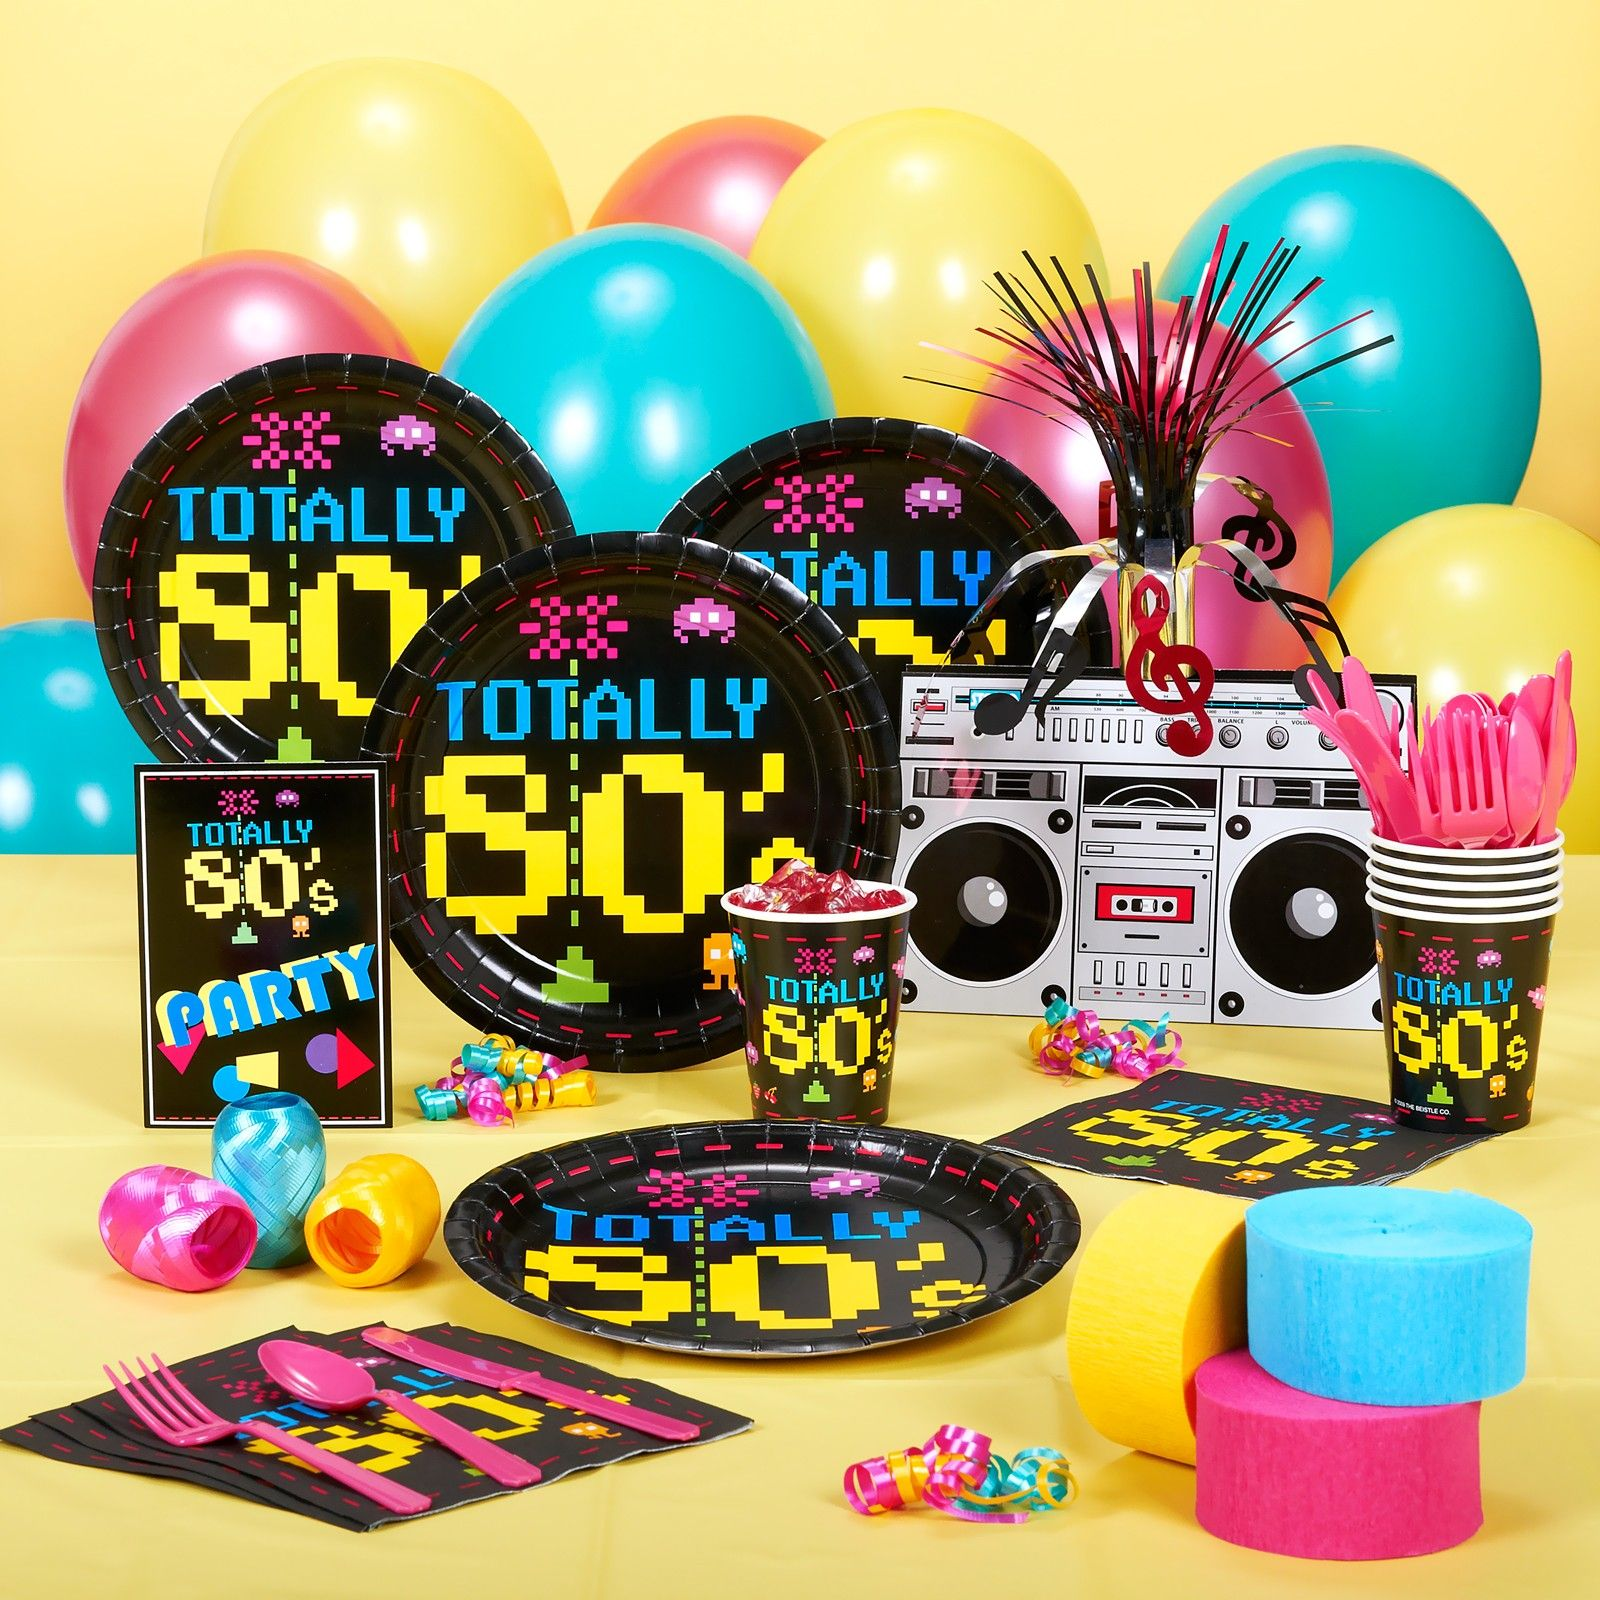 80s theme party ideas decorations